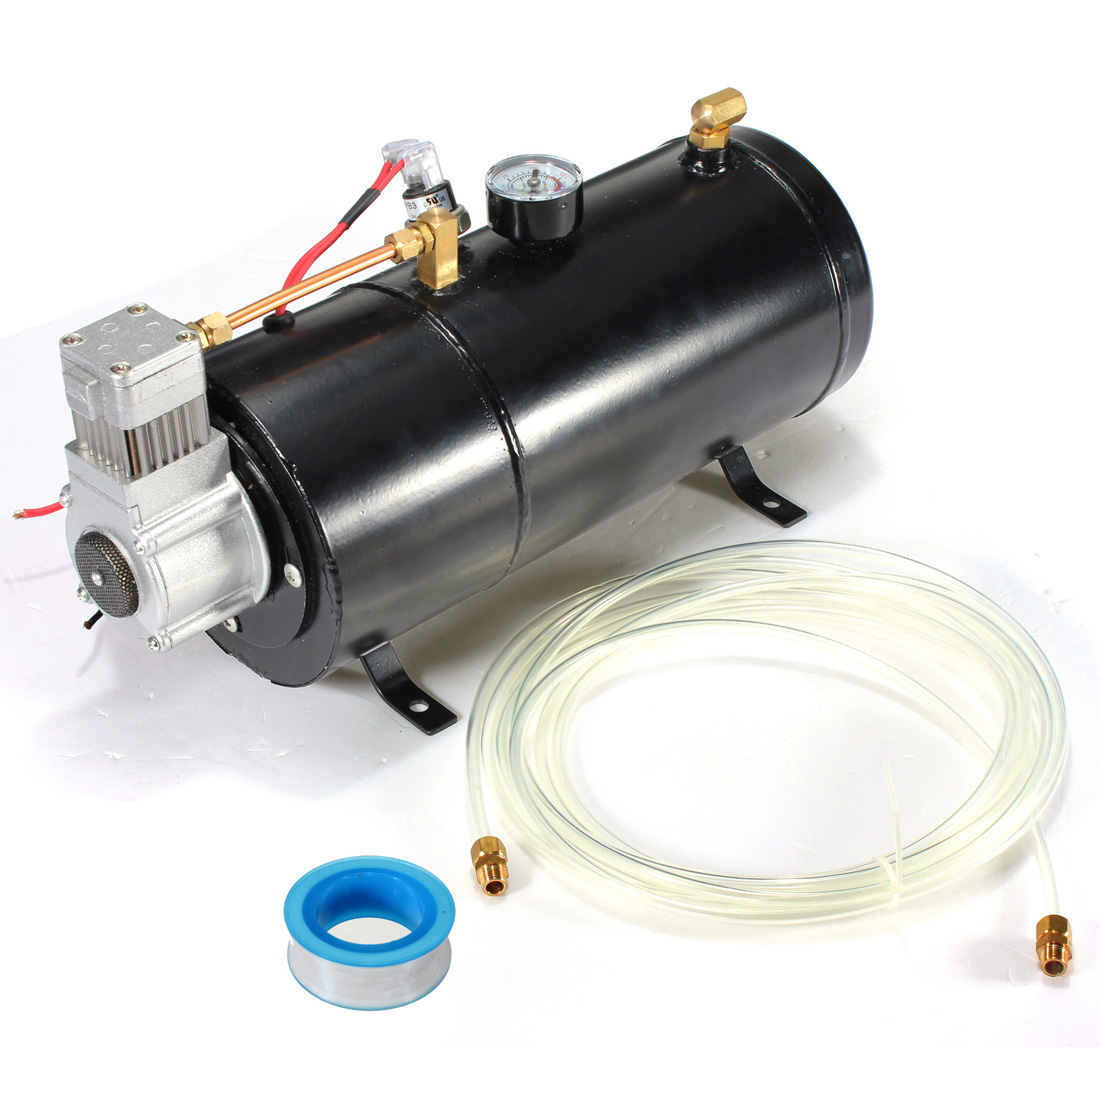 120 PSI 12V Air Horn Compressor Tank Pump Train Auto Car Truck Boat Air Horn Compressor V on 12v air conditioners for vehicles, rubber hose for compressor, gas compressor, 12v dc air conditioner, 12v air pump, refrigerator compressor, 12v motor, 12v air conditioning system,